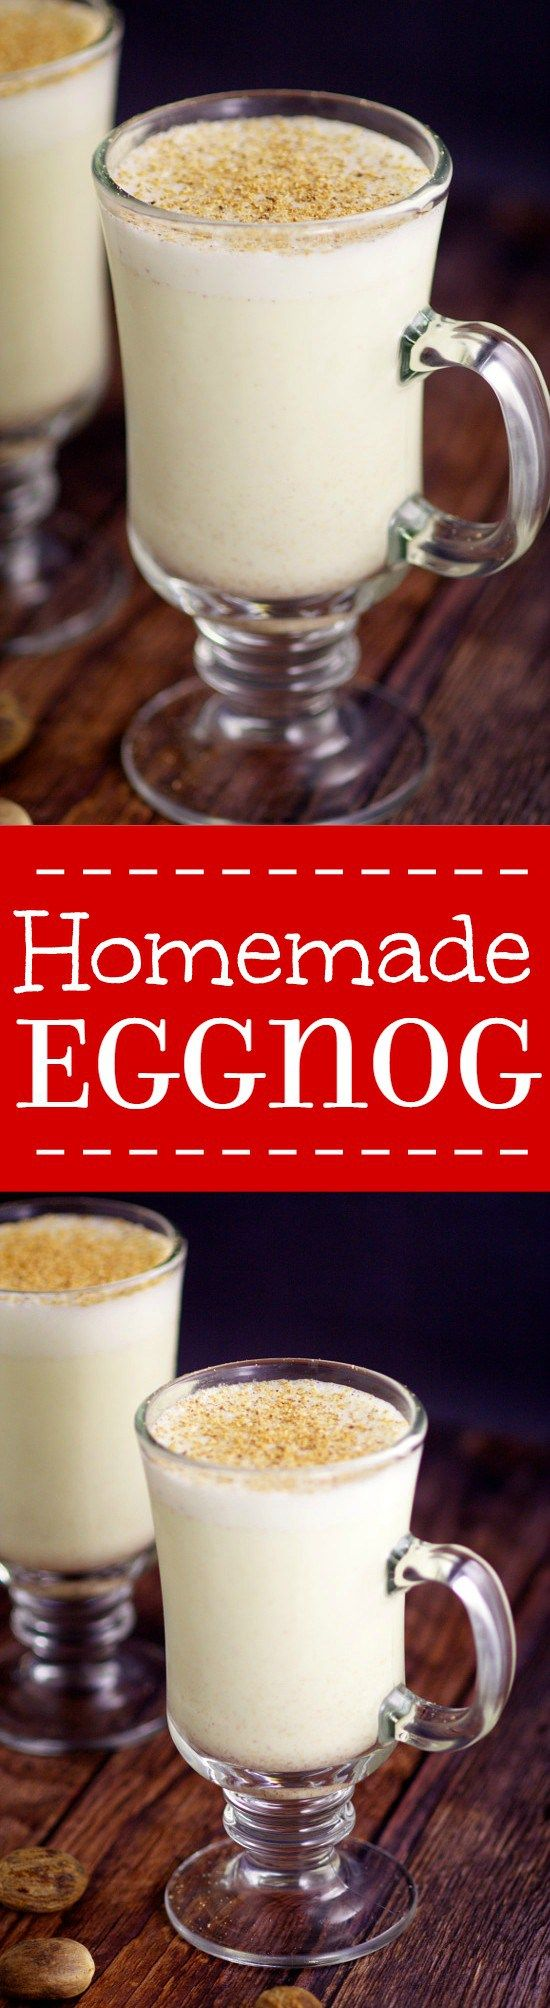 Creamy, smooth Homemade Eggnog is simple to make with just 6 ingredients to get you into the spirit of the season! Store bought can't compete with homemade! Homemade Eggnog is the perfect Christmas treat! Use it in recipes and for parties. Mmmm... homemade eggnog is the best!